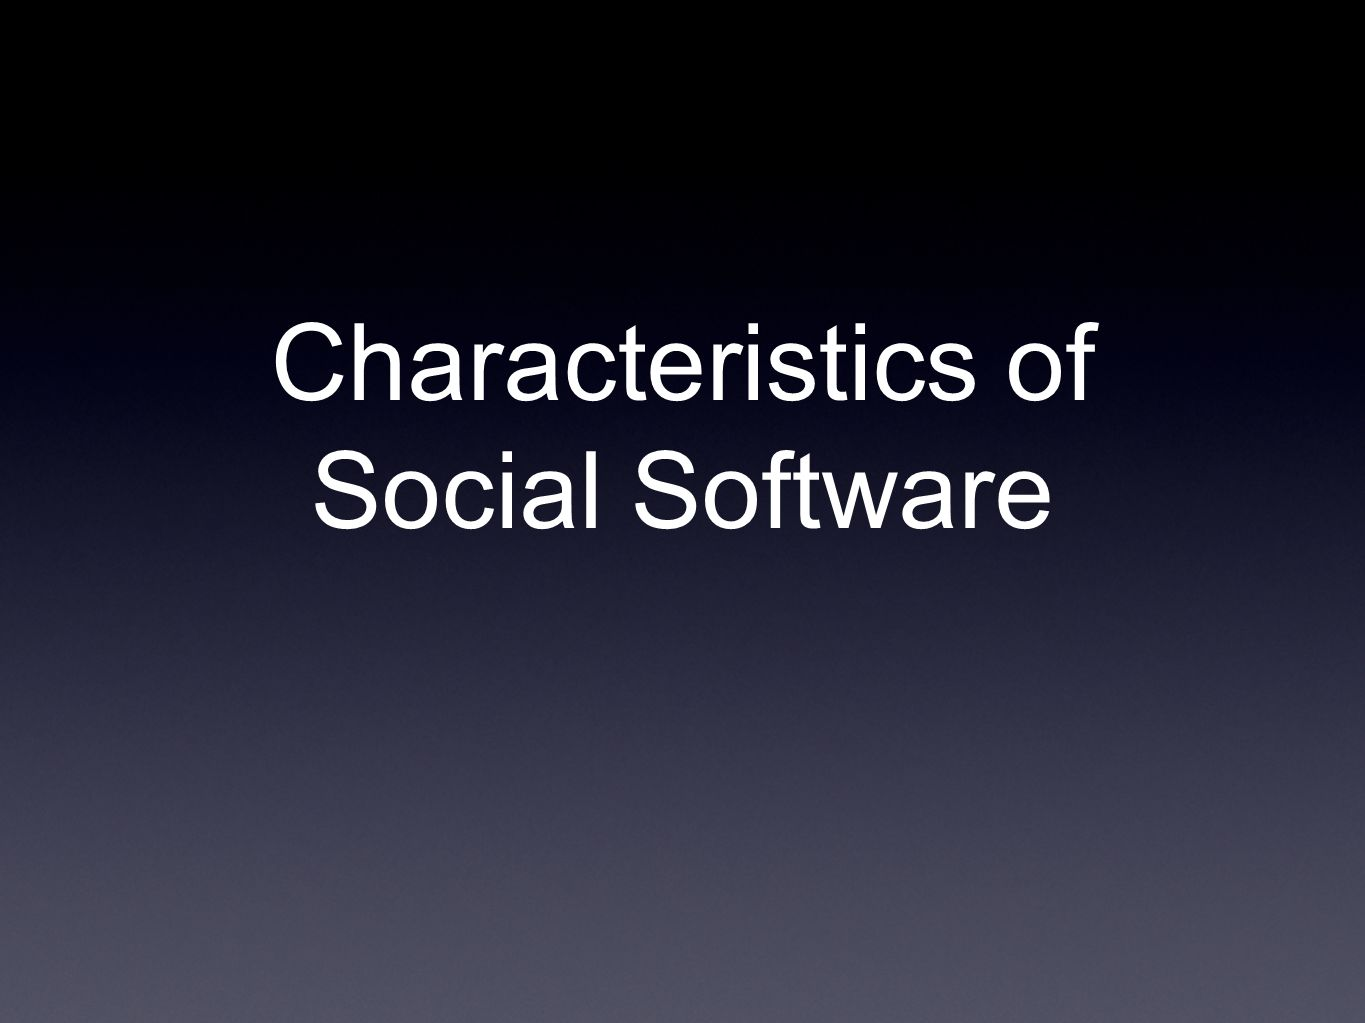 Characteristics of Social Software